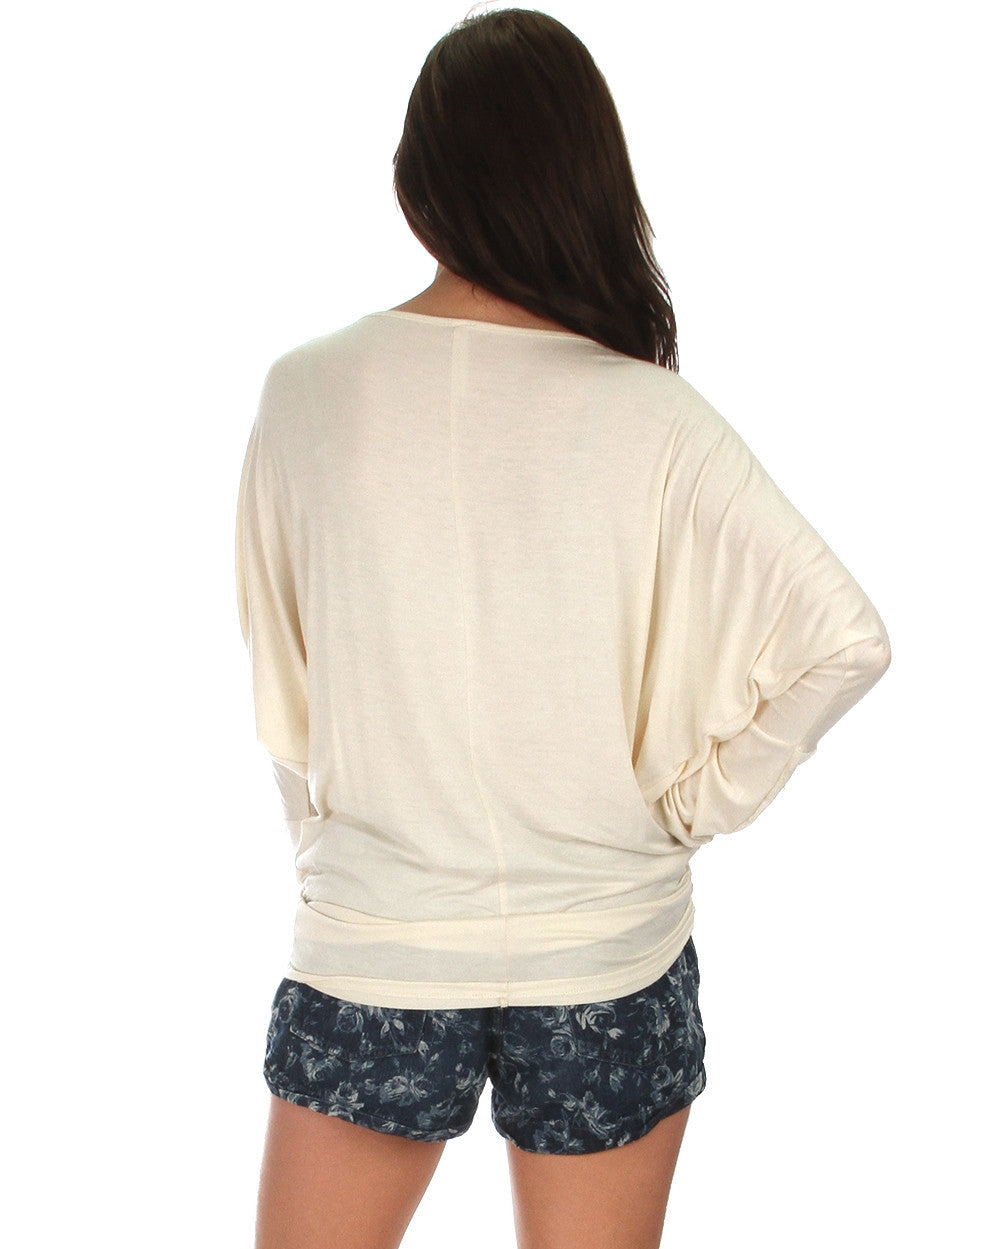 Long Sleeve Dolman Top With Side Ruching In Ivory